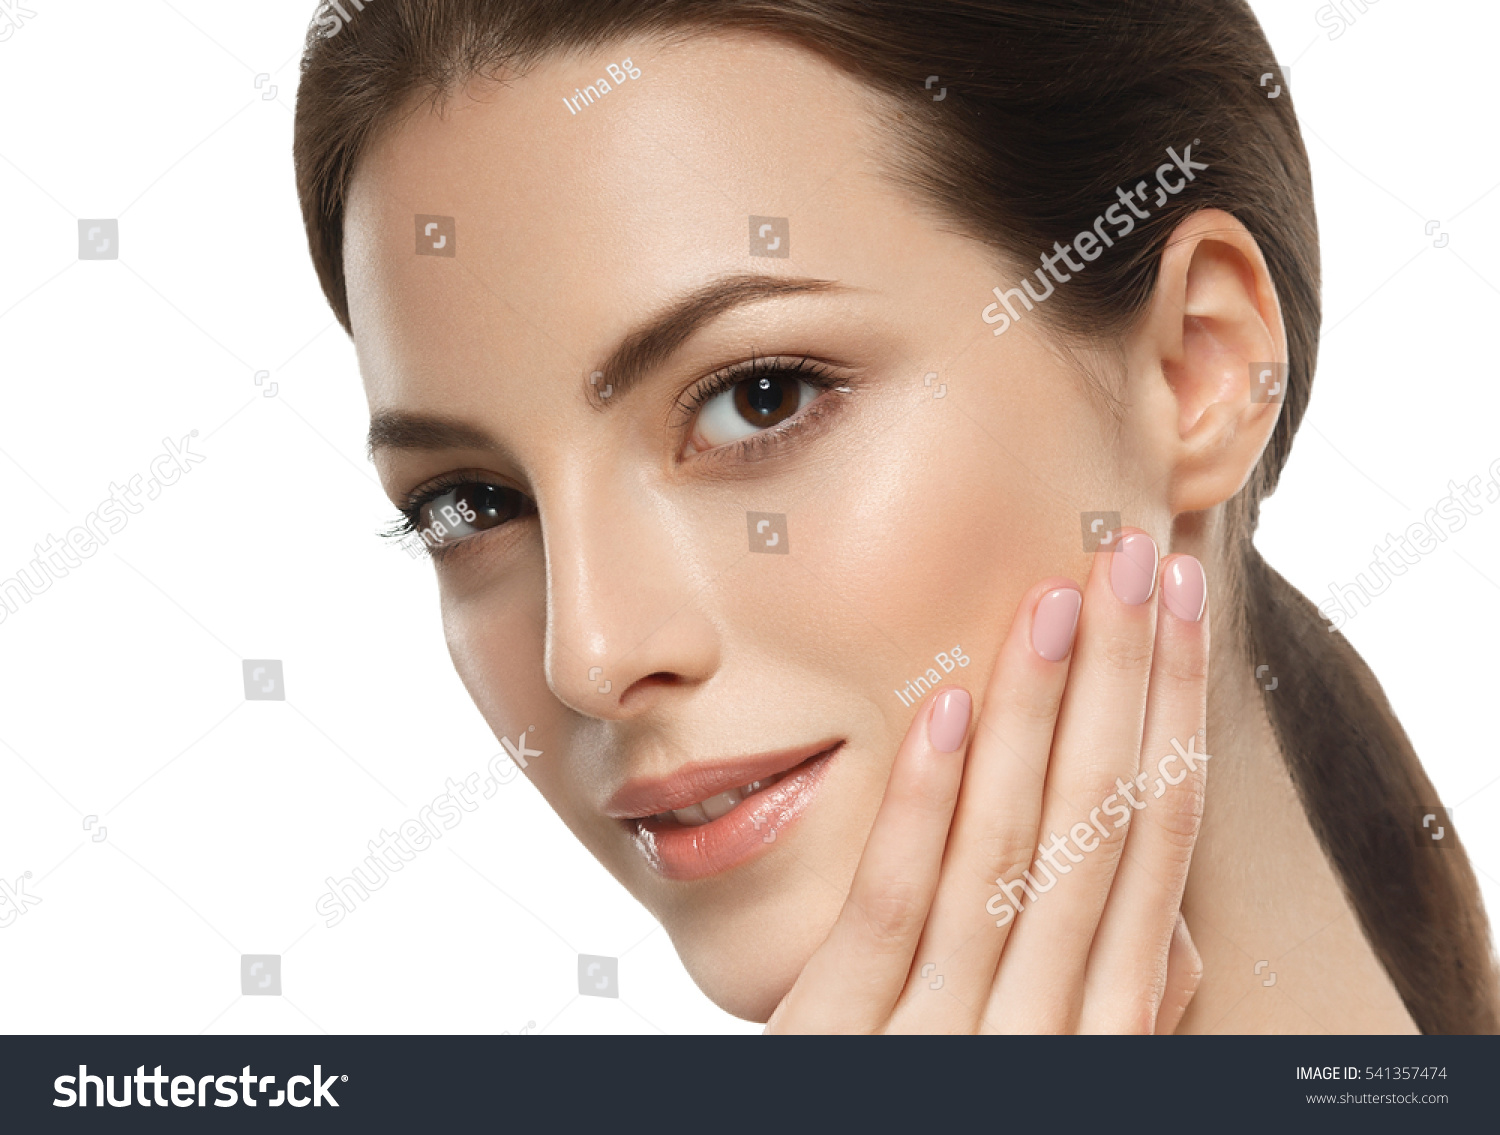 Beauty Woman face Portrait Beautiful model Girl with Perfect Fresh Clean Skin brunette short hair Youth and Skin Care Concept Isolated on a white background